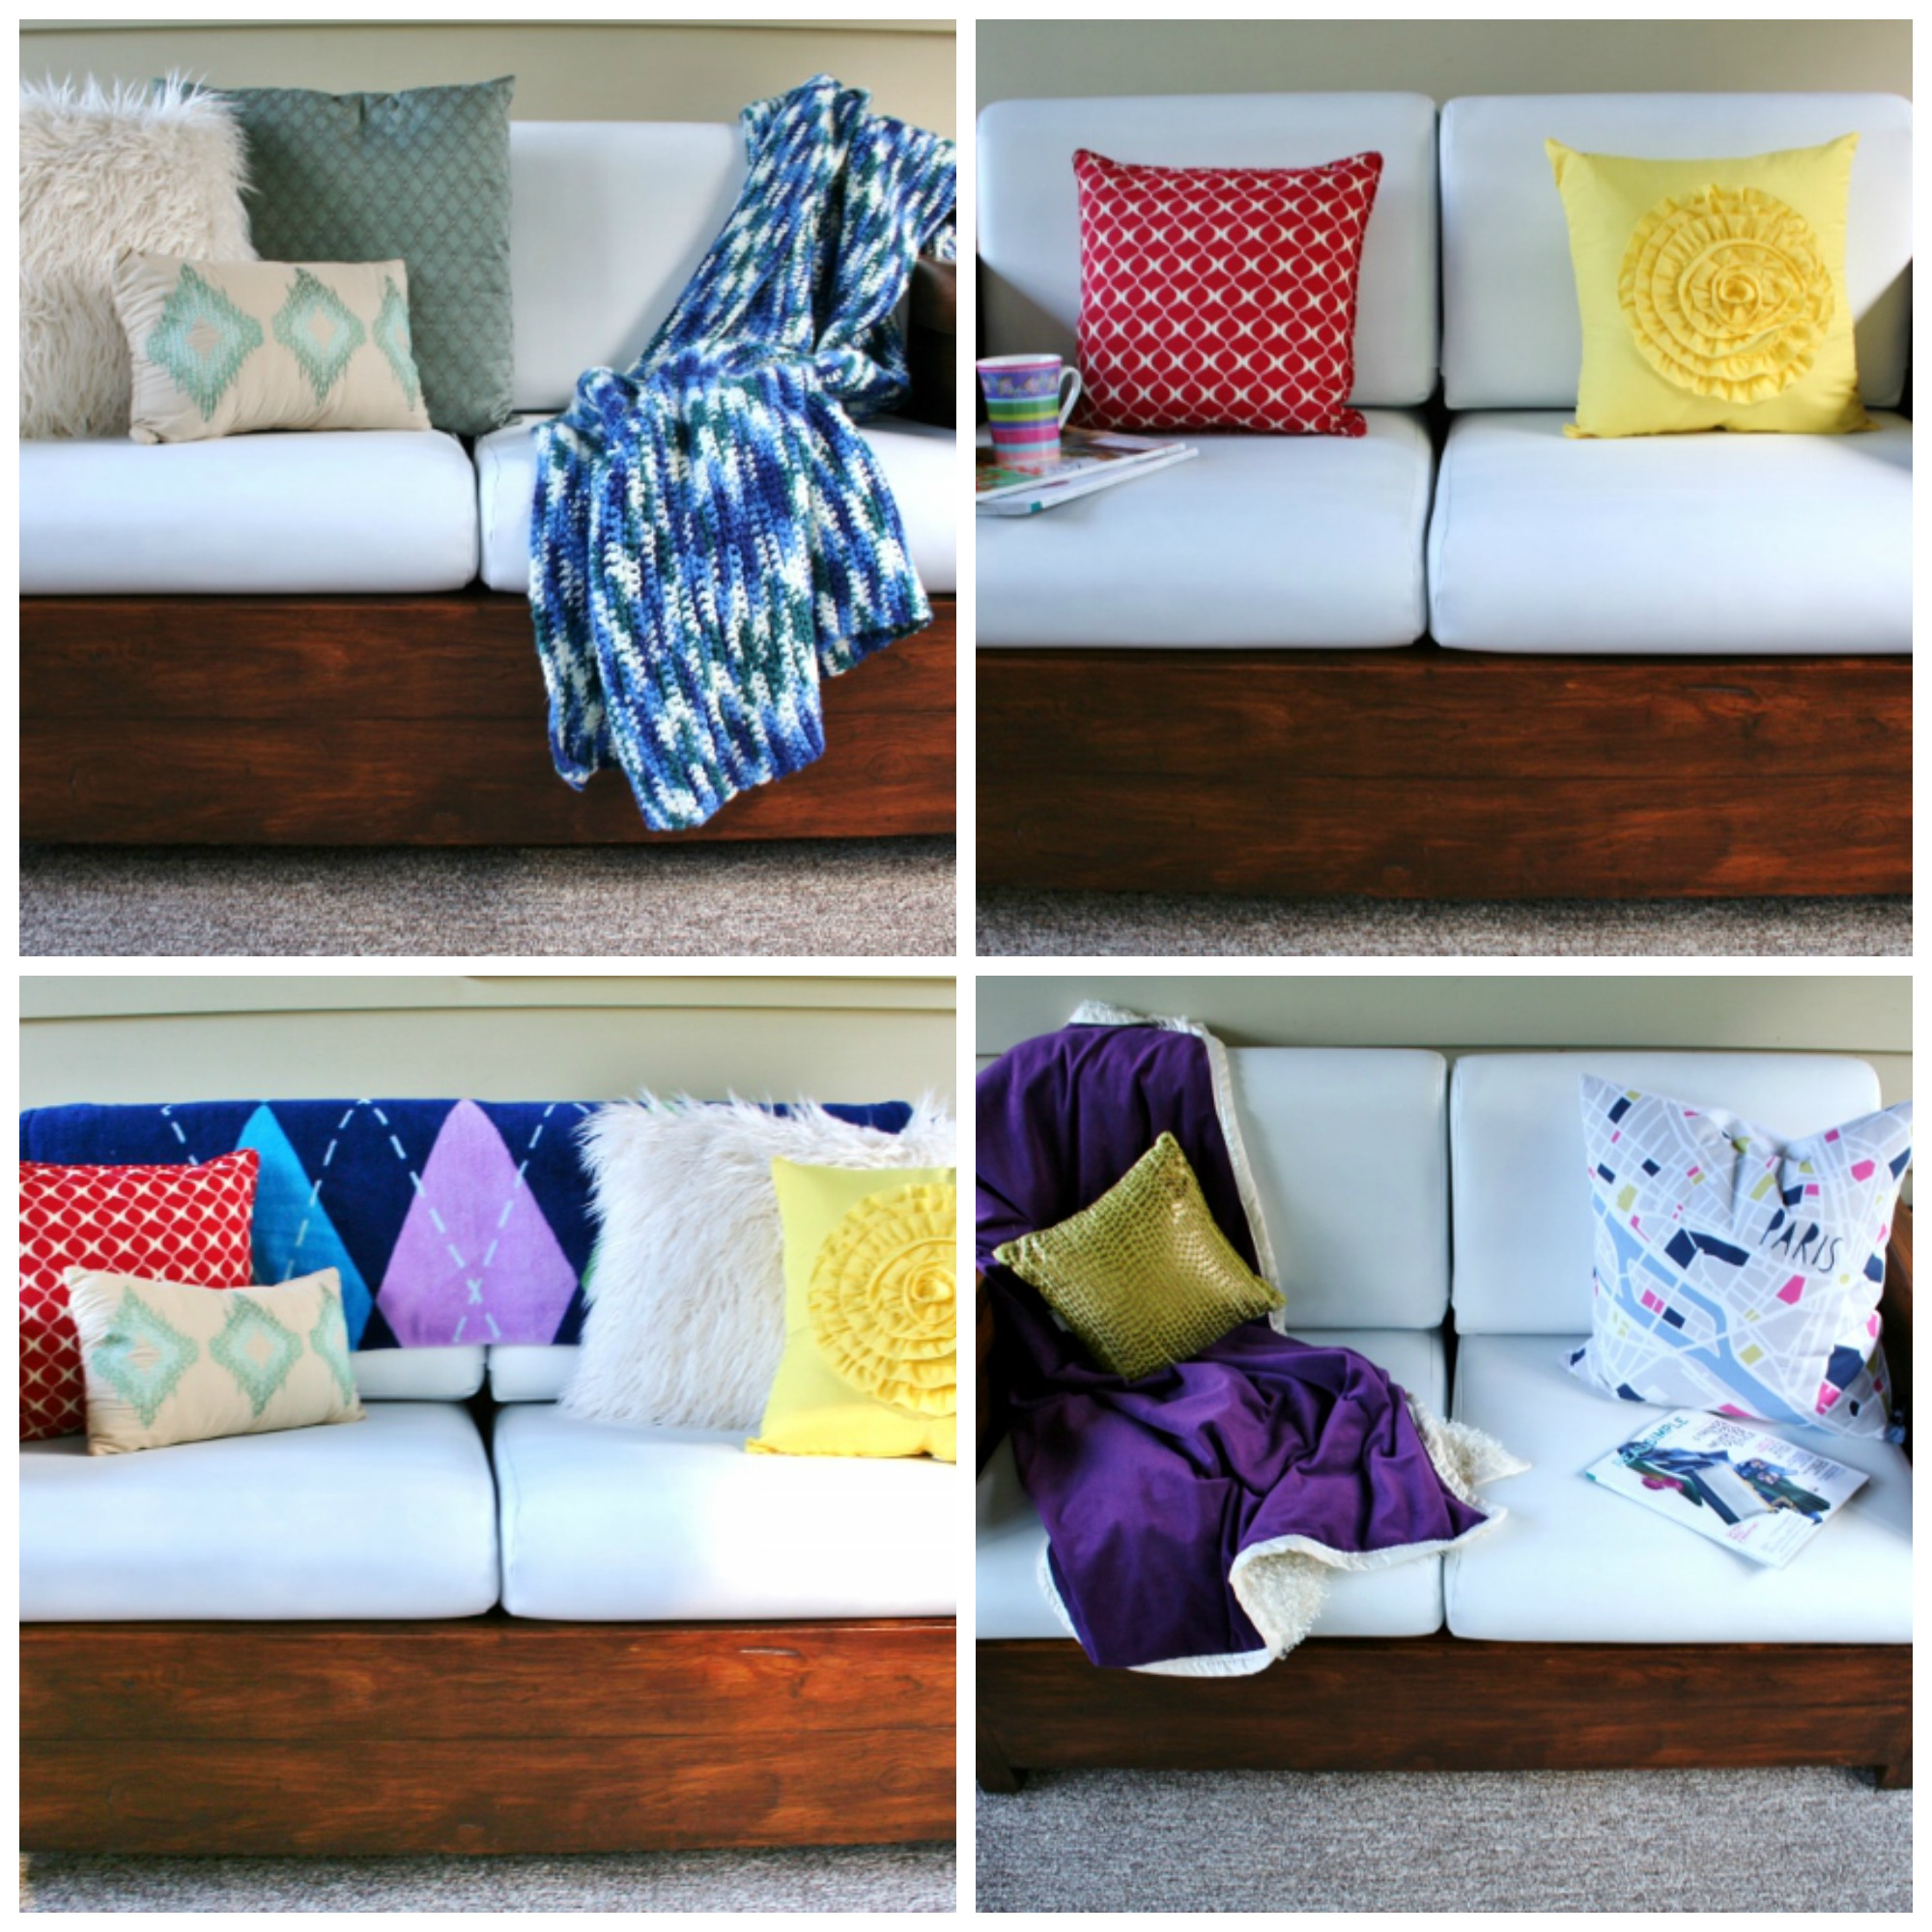 How to Make Beautiful Throw Pillows with Plastic Bag Filling